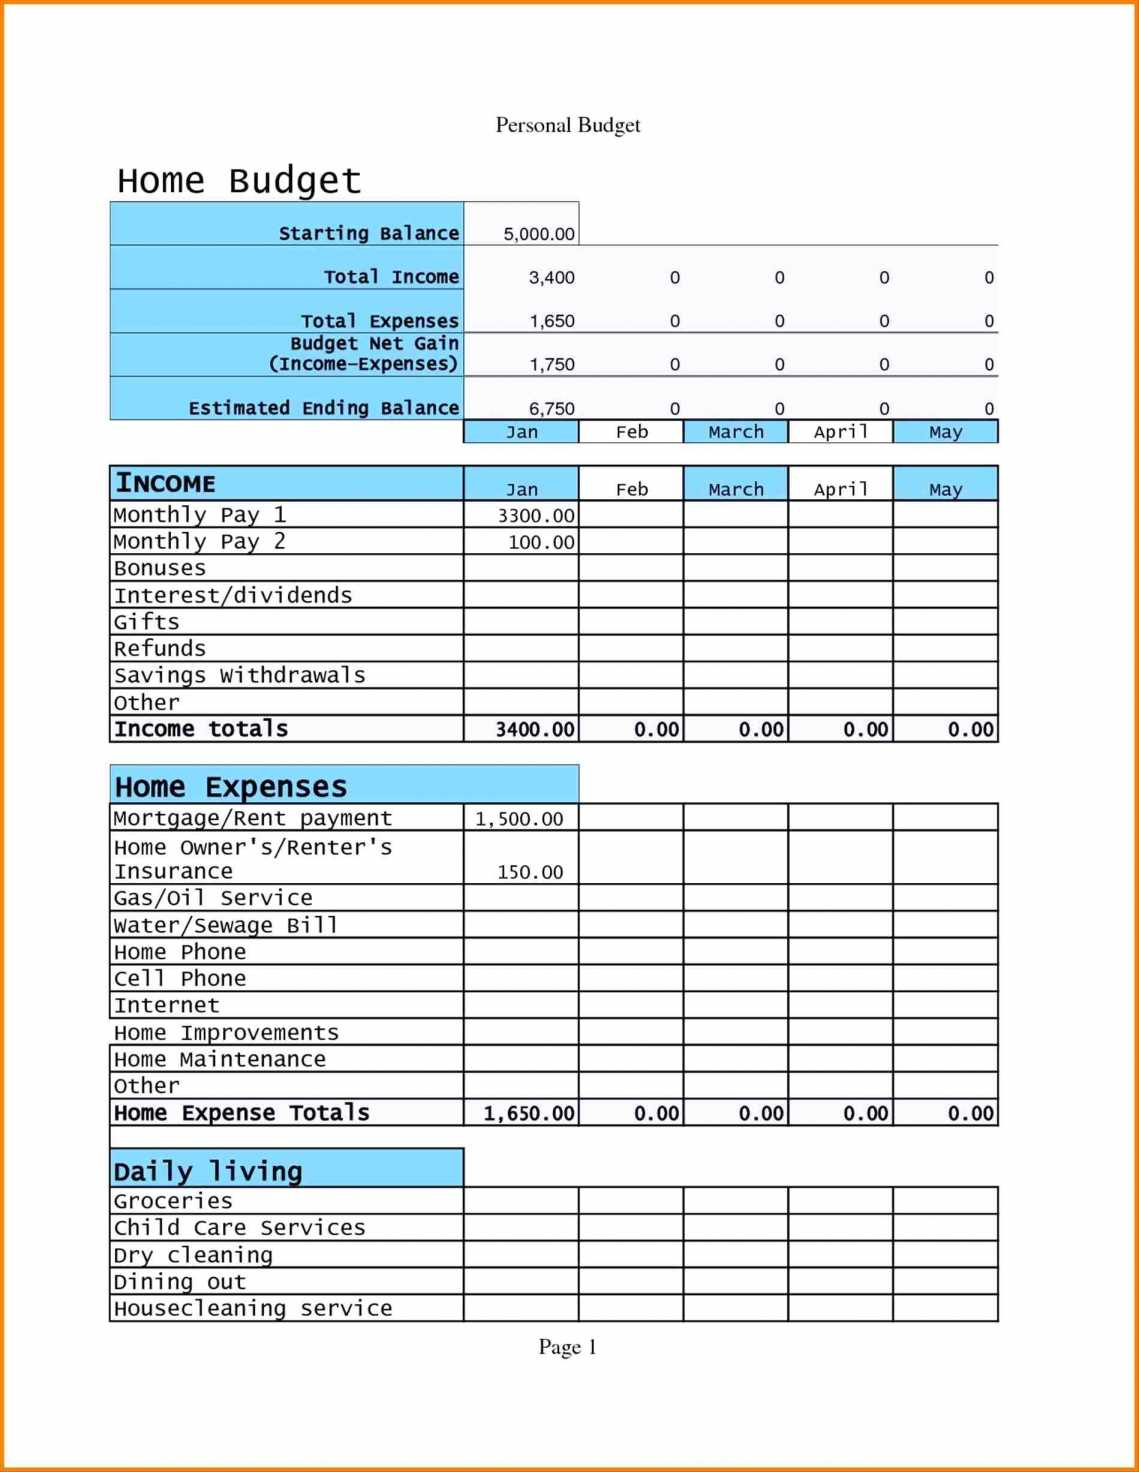 Construction project cost estimate template excel example for Residential home construction cost estimator